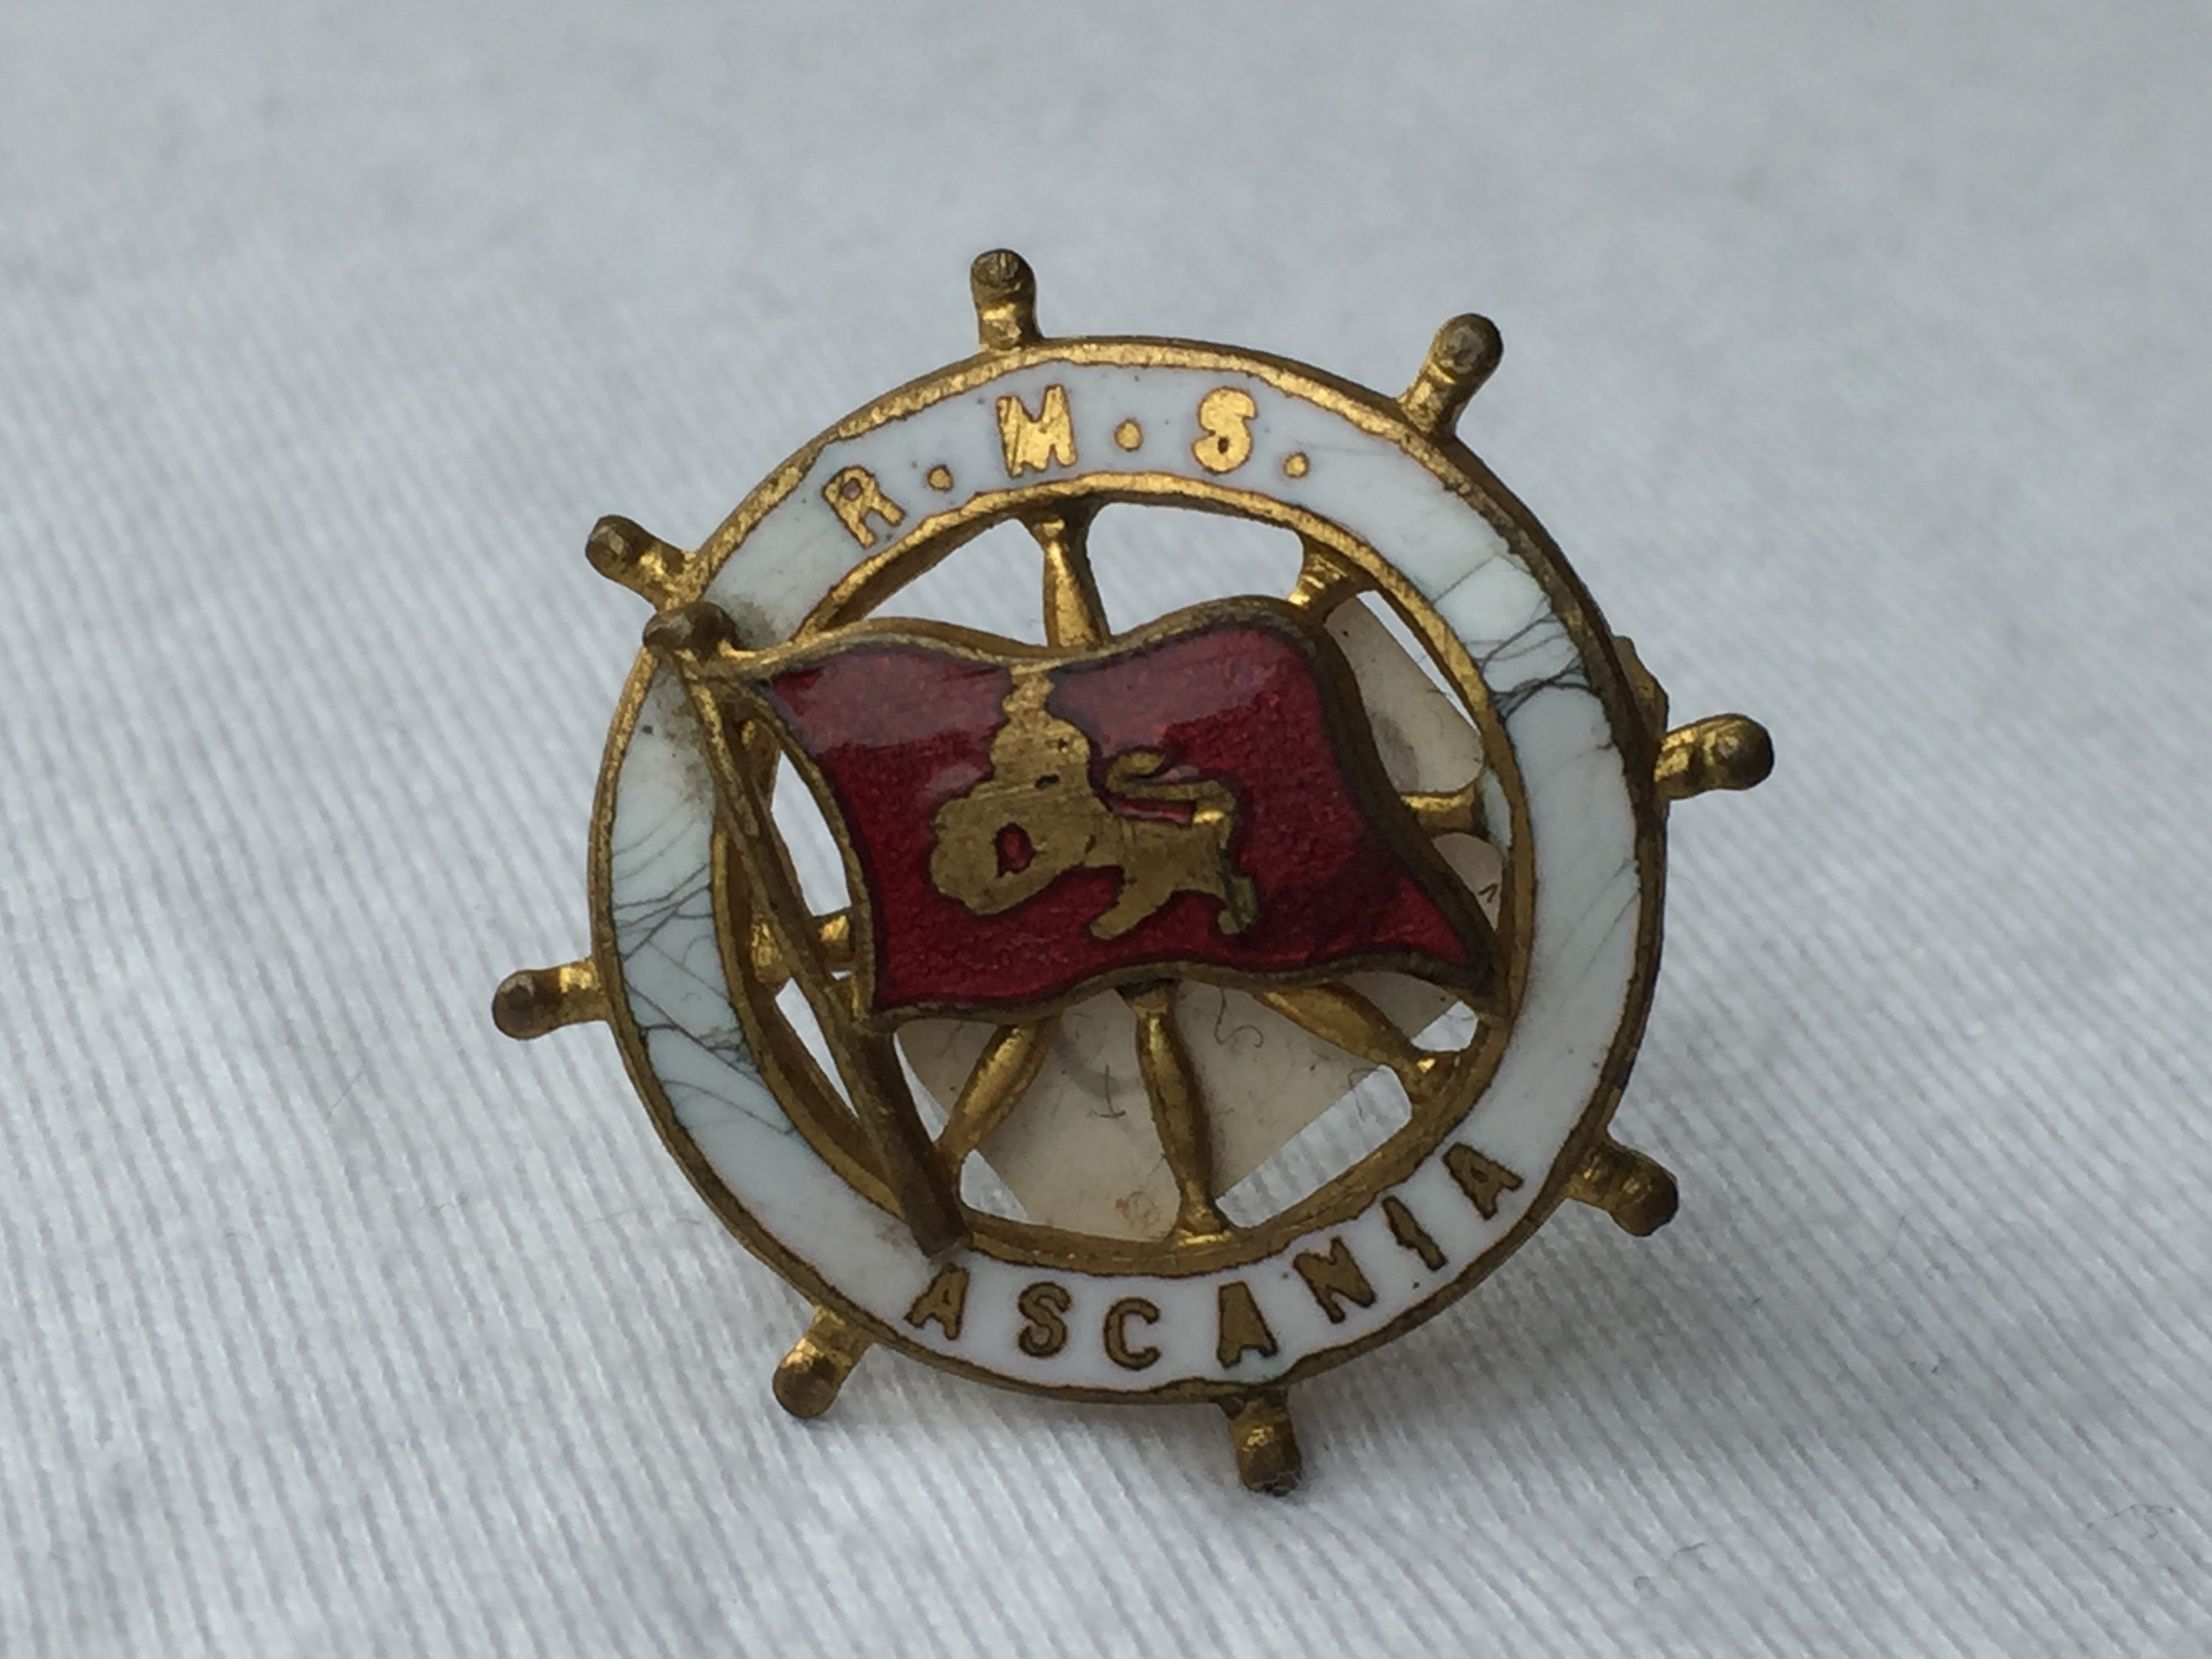 LAPEL PIN BADGE FROM THE CUNARD LINE VESSEL THE RMS ASCANIA